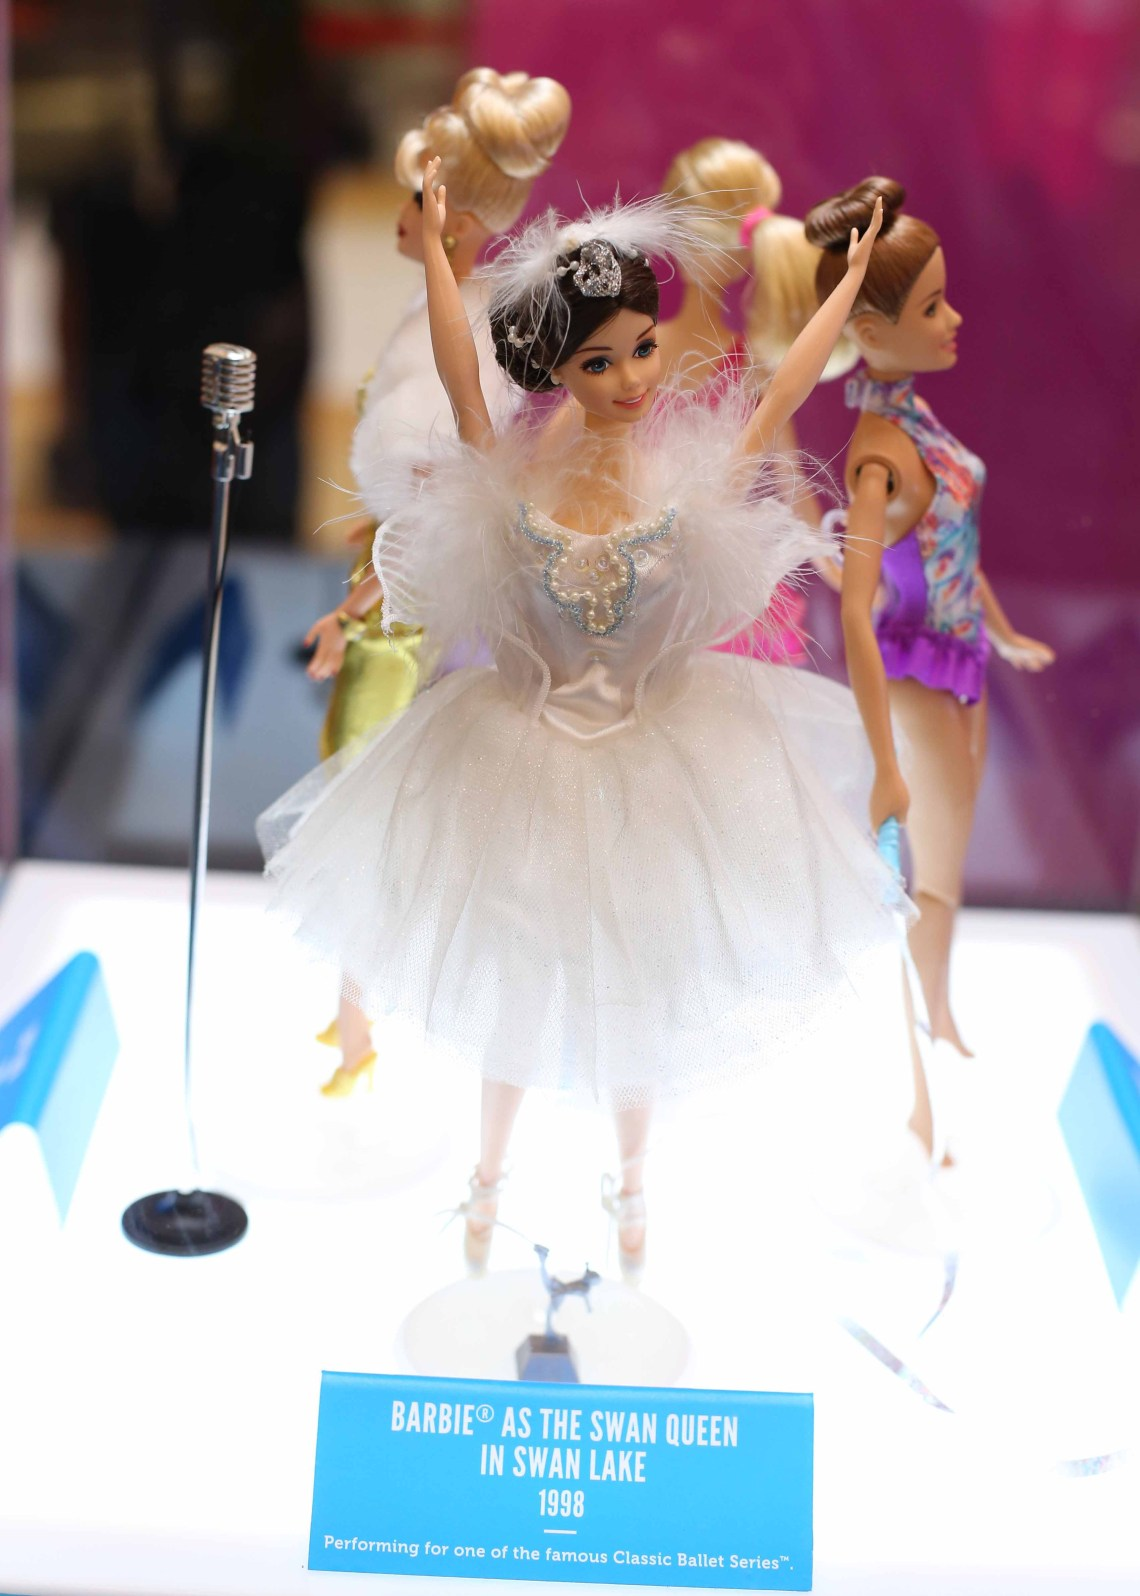 BARBIE_ World of Endless Possibilities Exhibition 10_smartdory 2016